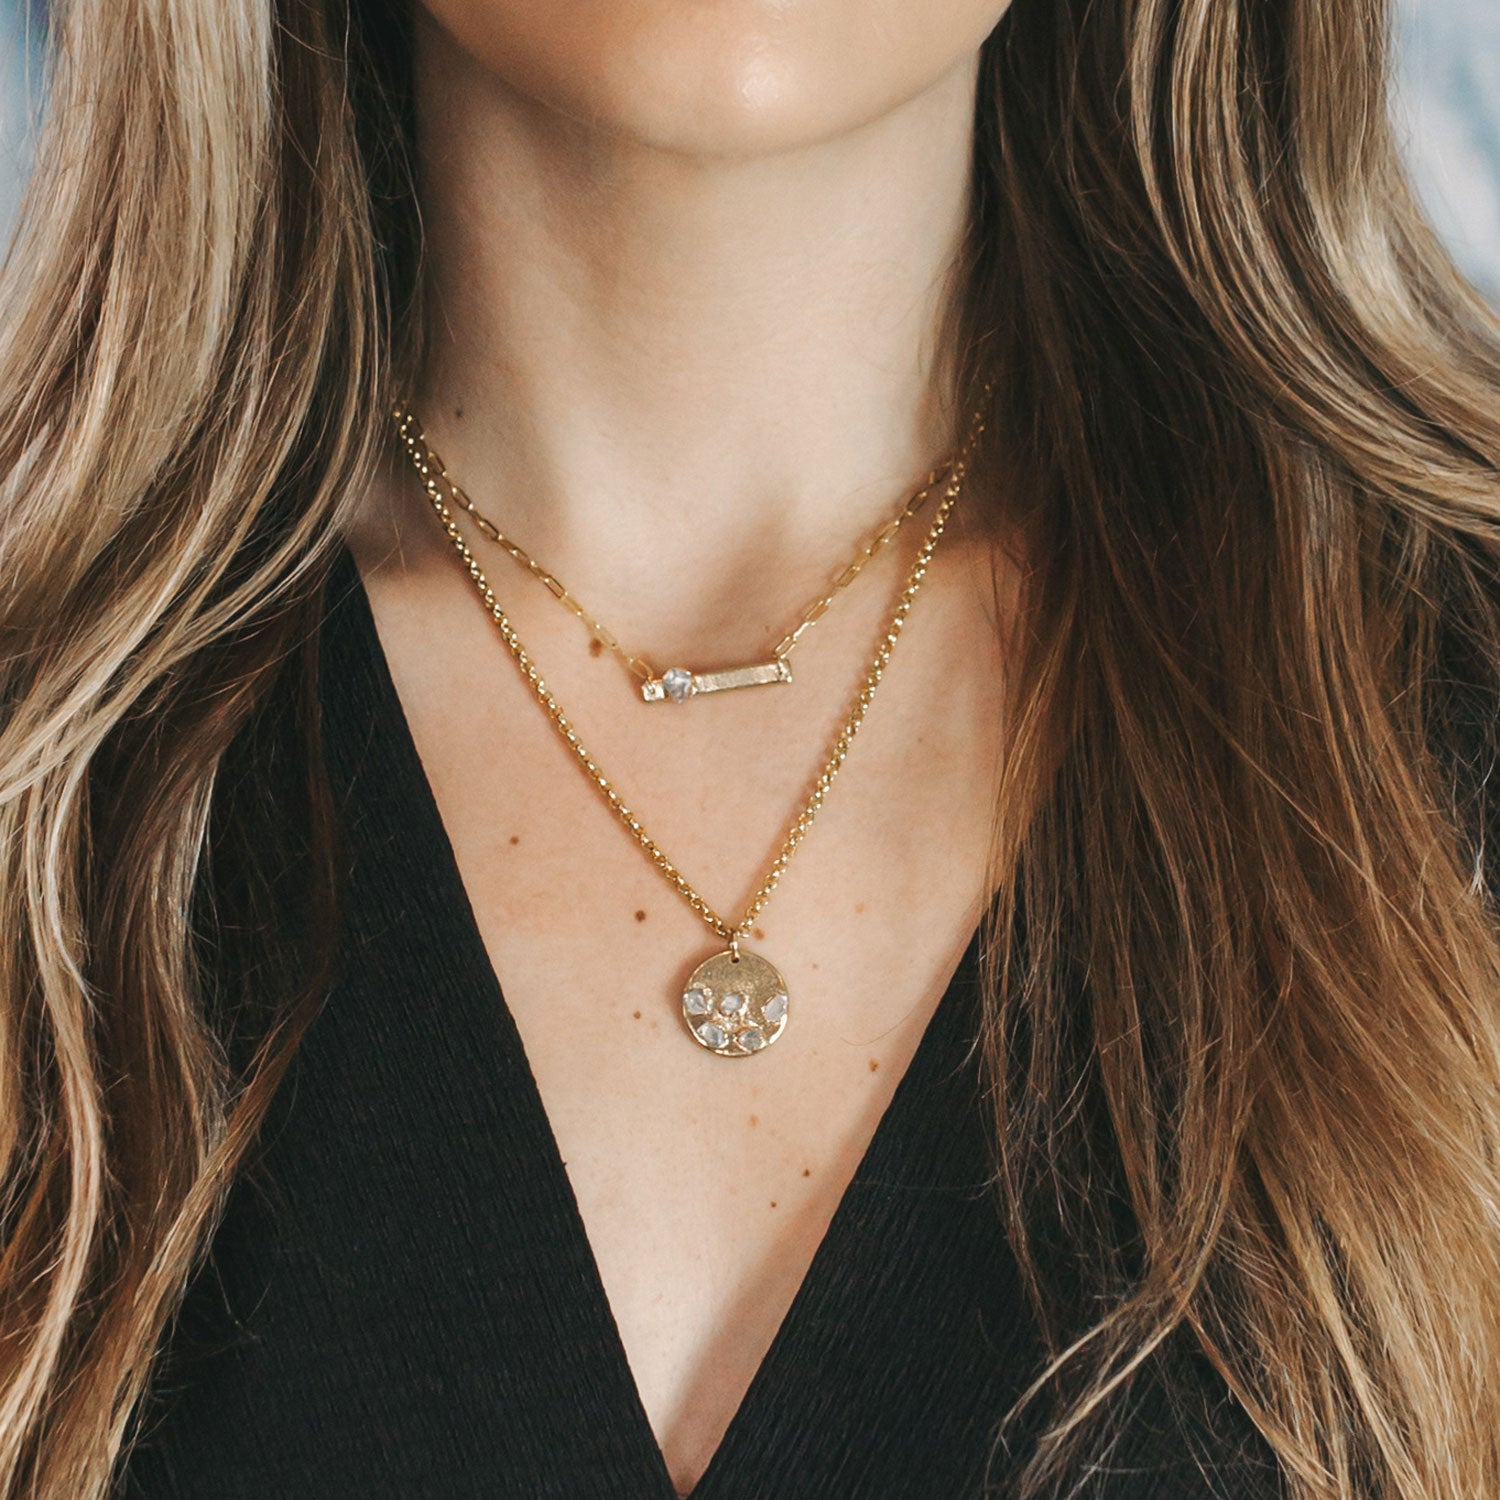 Herkimer Diamond Layering Necklaces by Dani Barbe